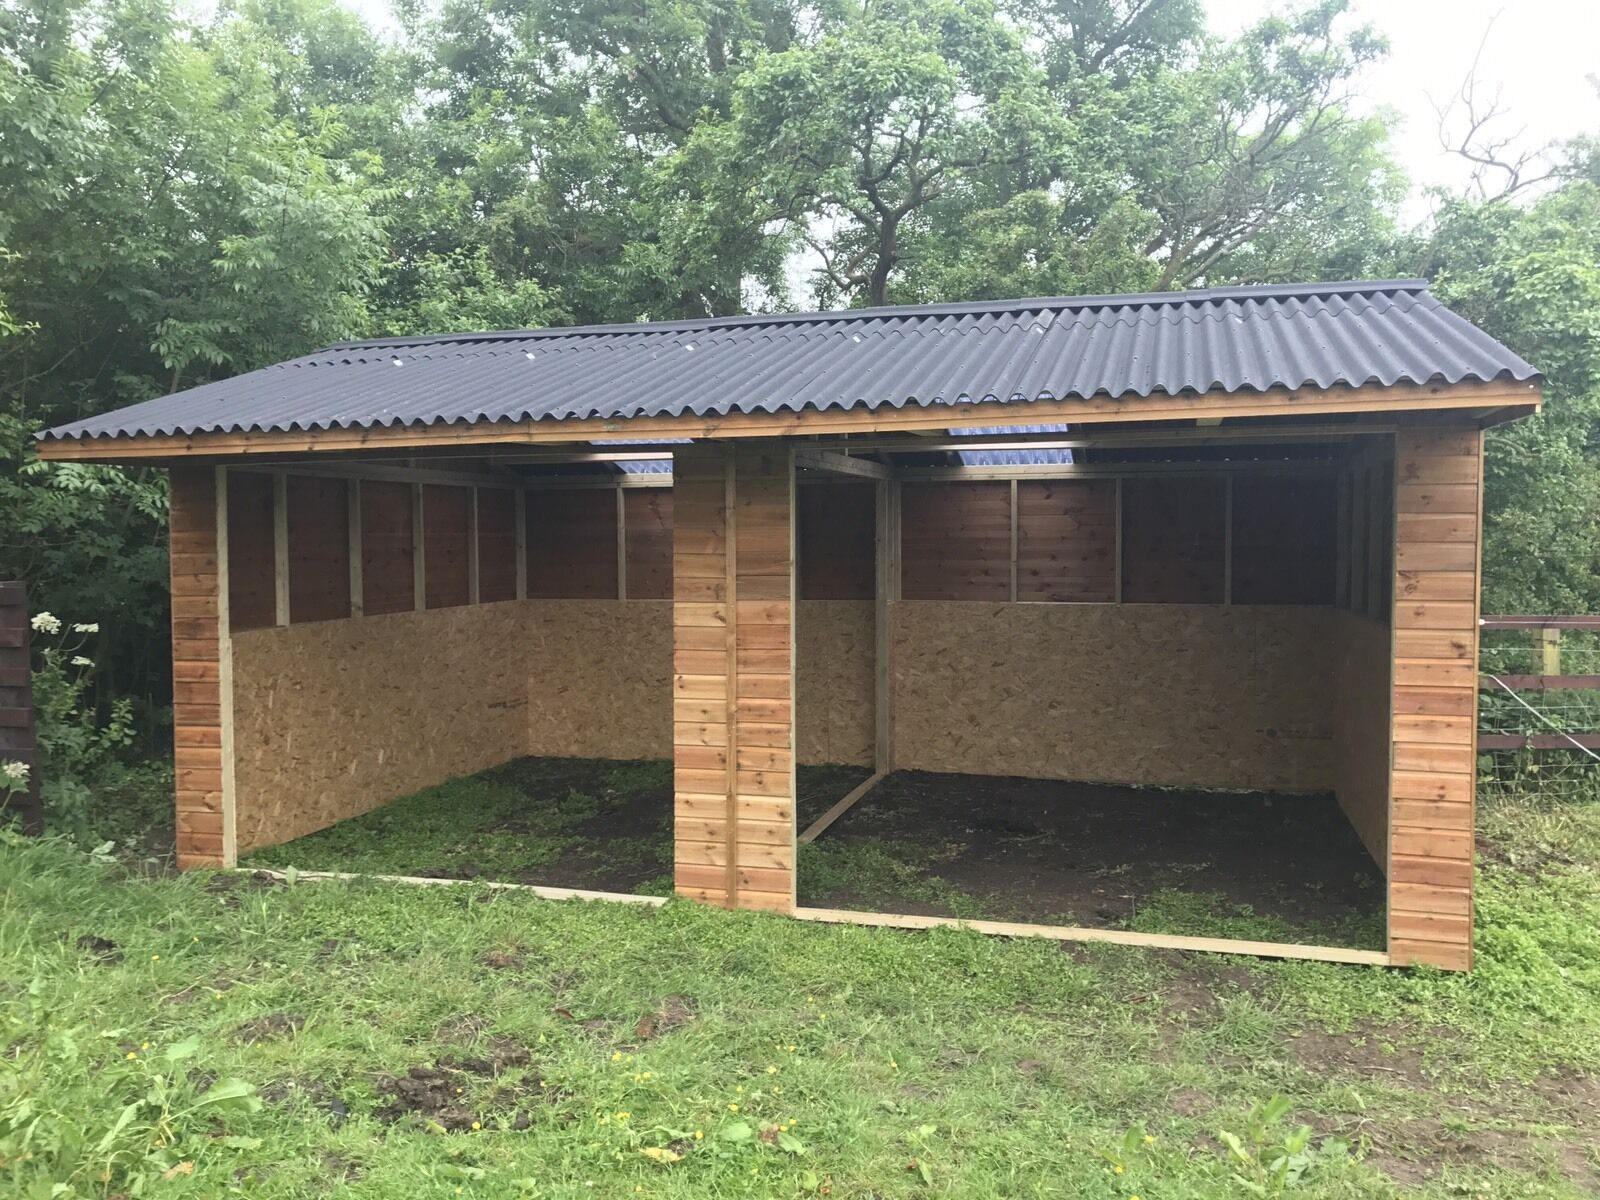 WOODEN STABLES MOBILE SHELTER Horse Stables 24X12 Field Shelter mobile Or Static